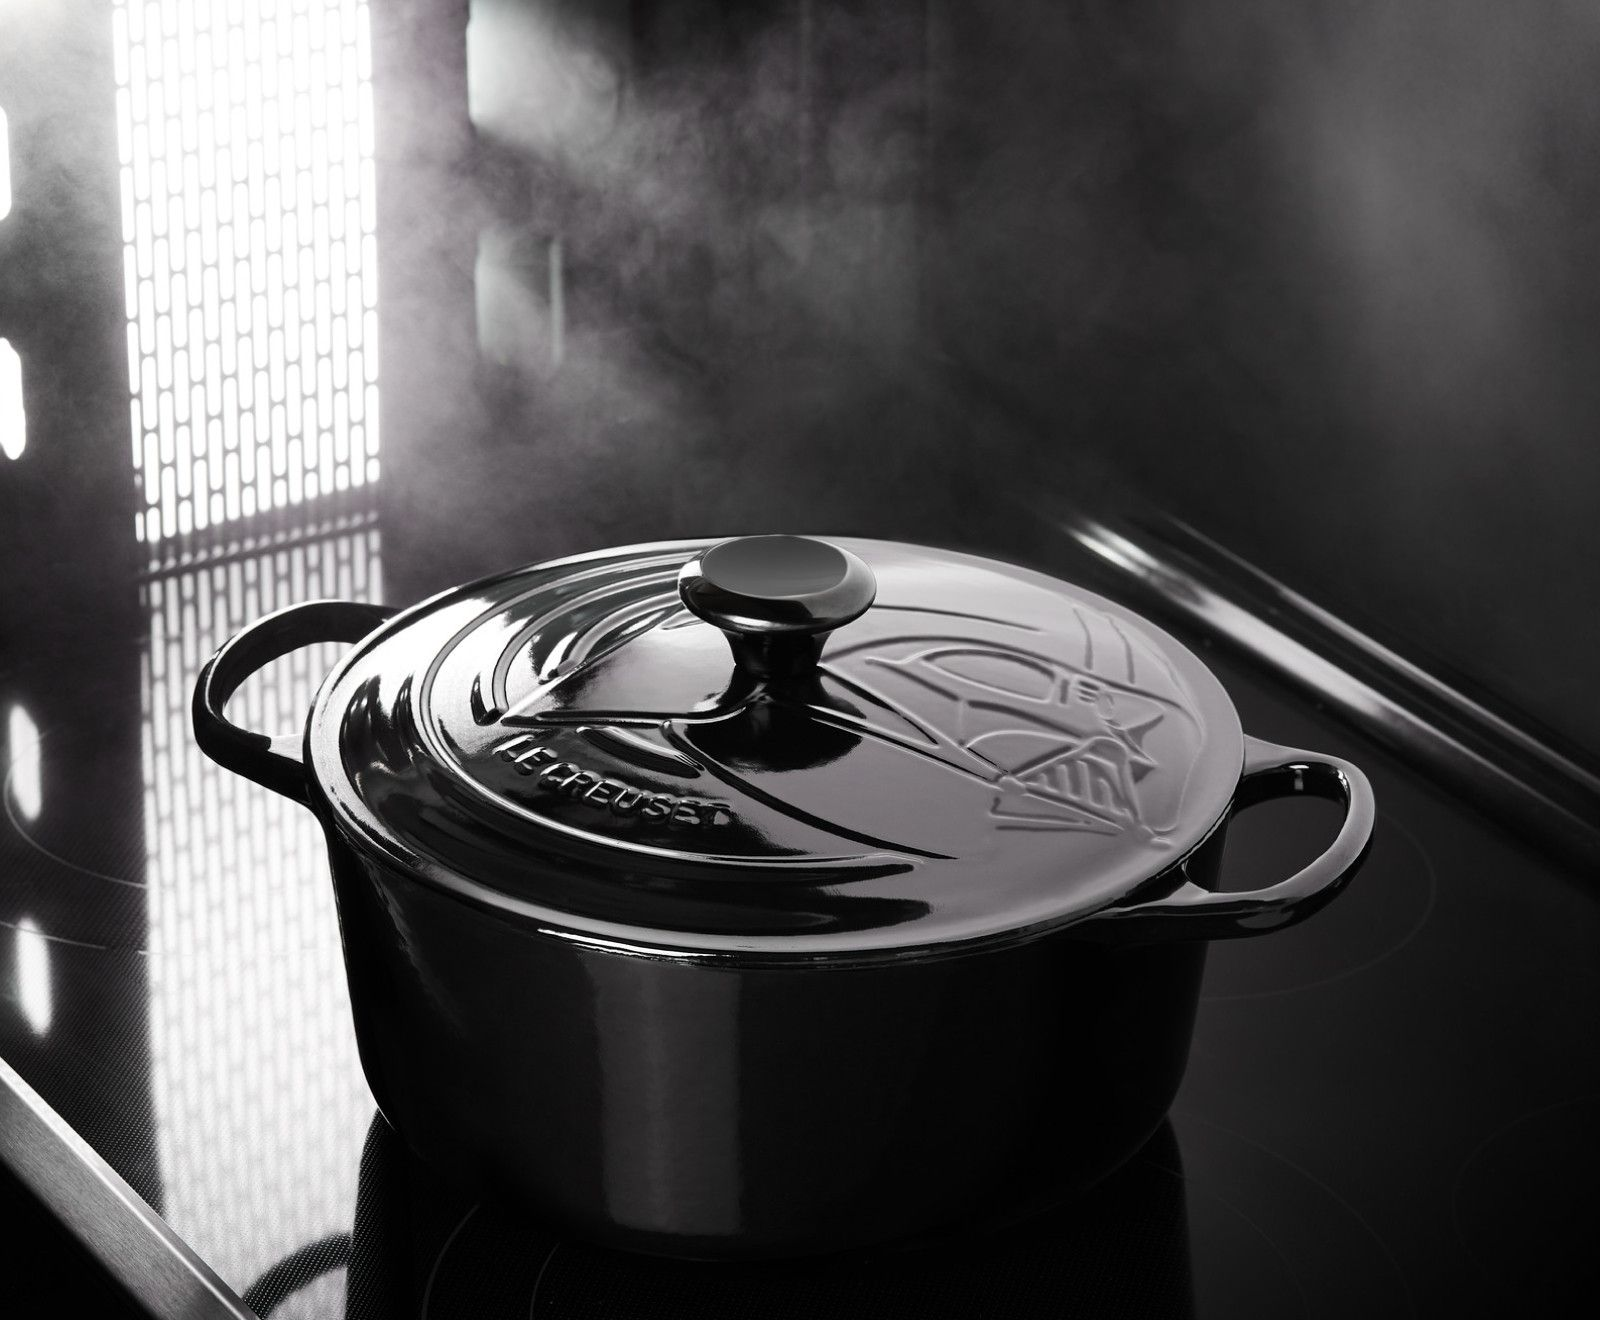 Le Creuset Launched a Star Wars Cookware Collection with Darth Vader and Droids